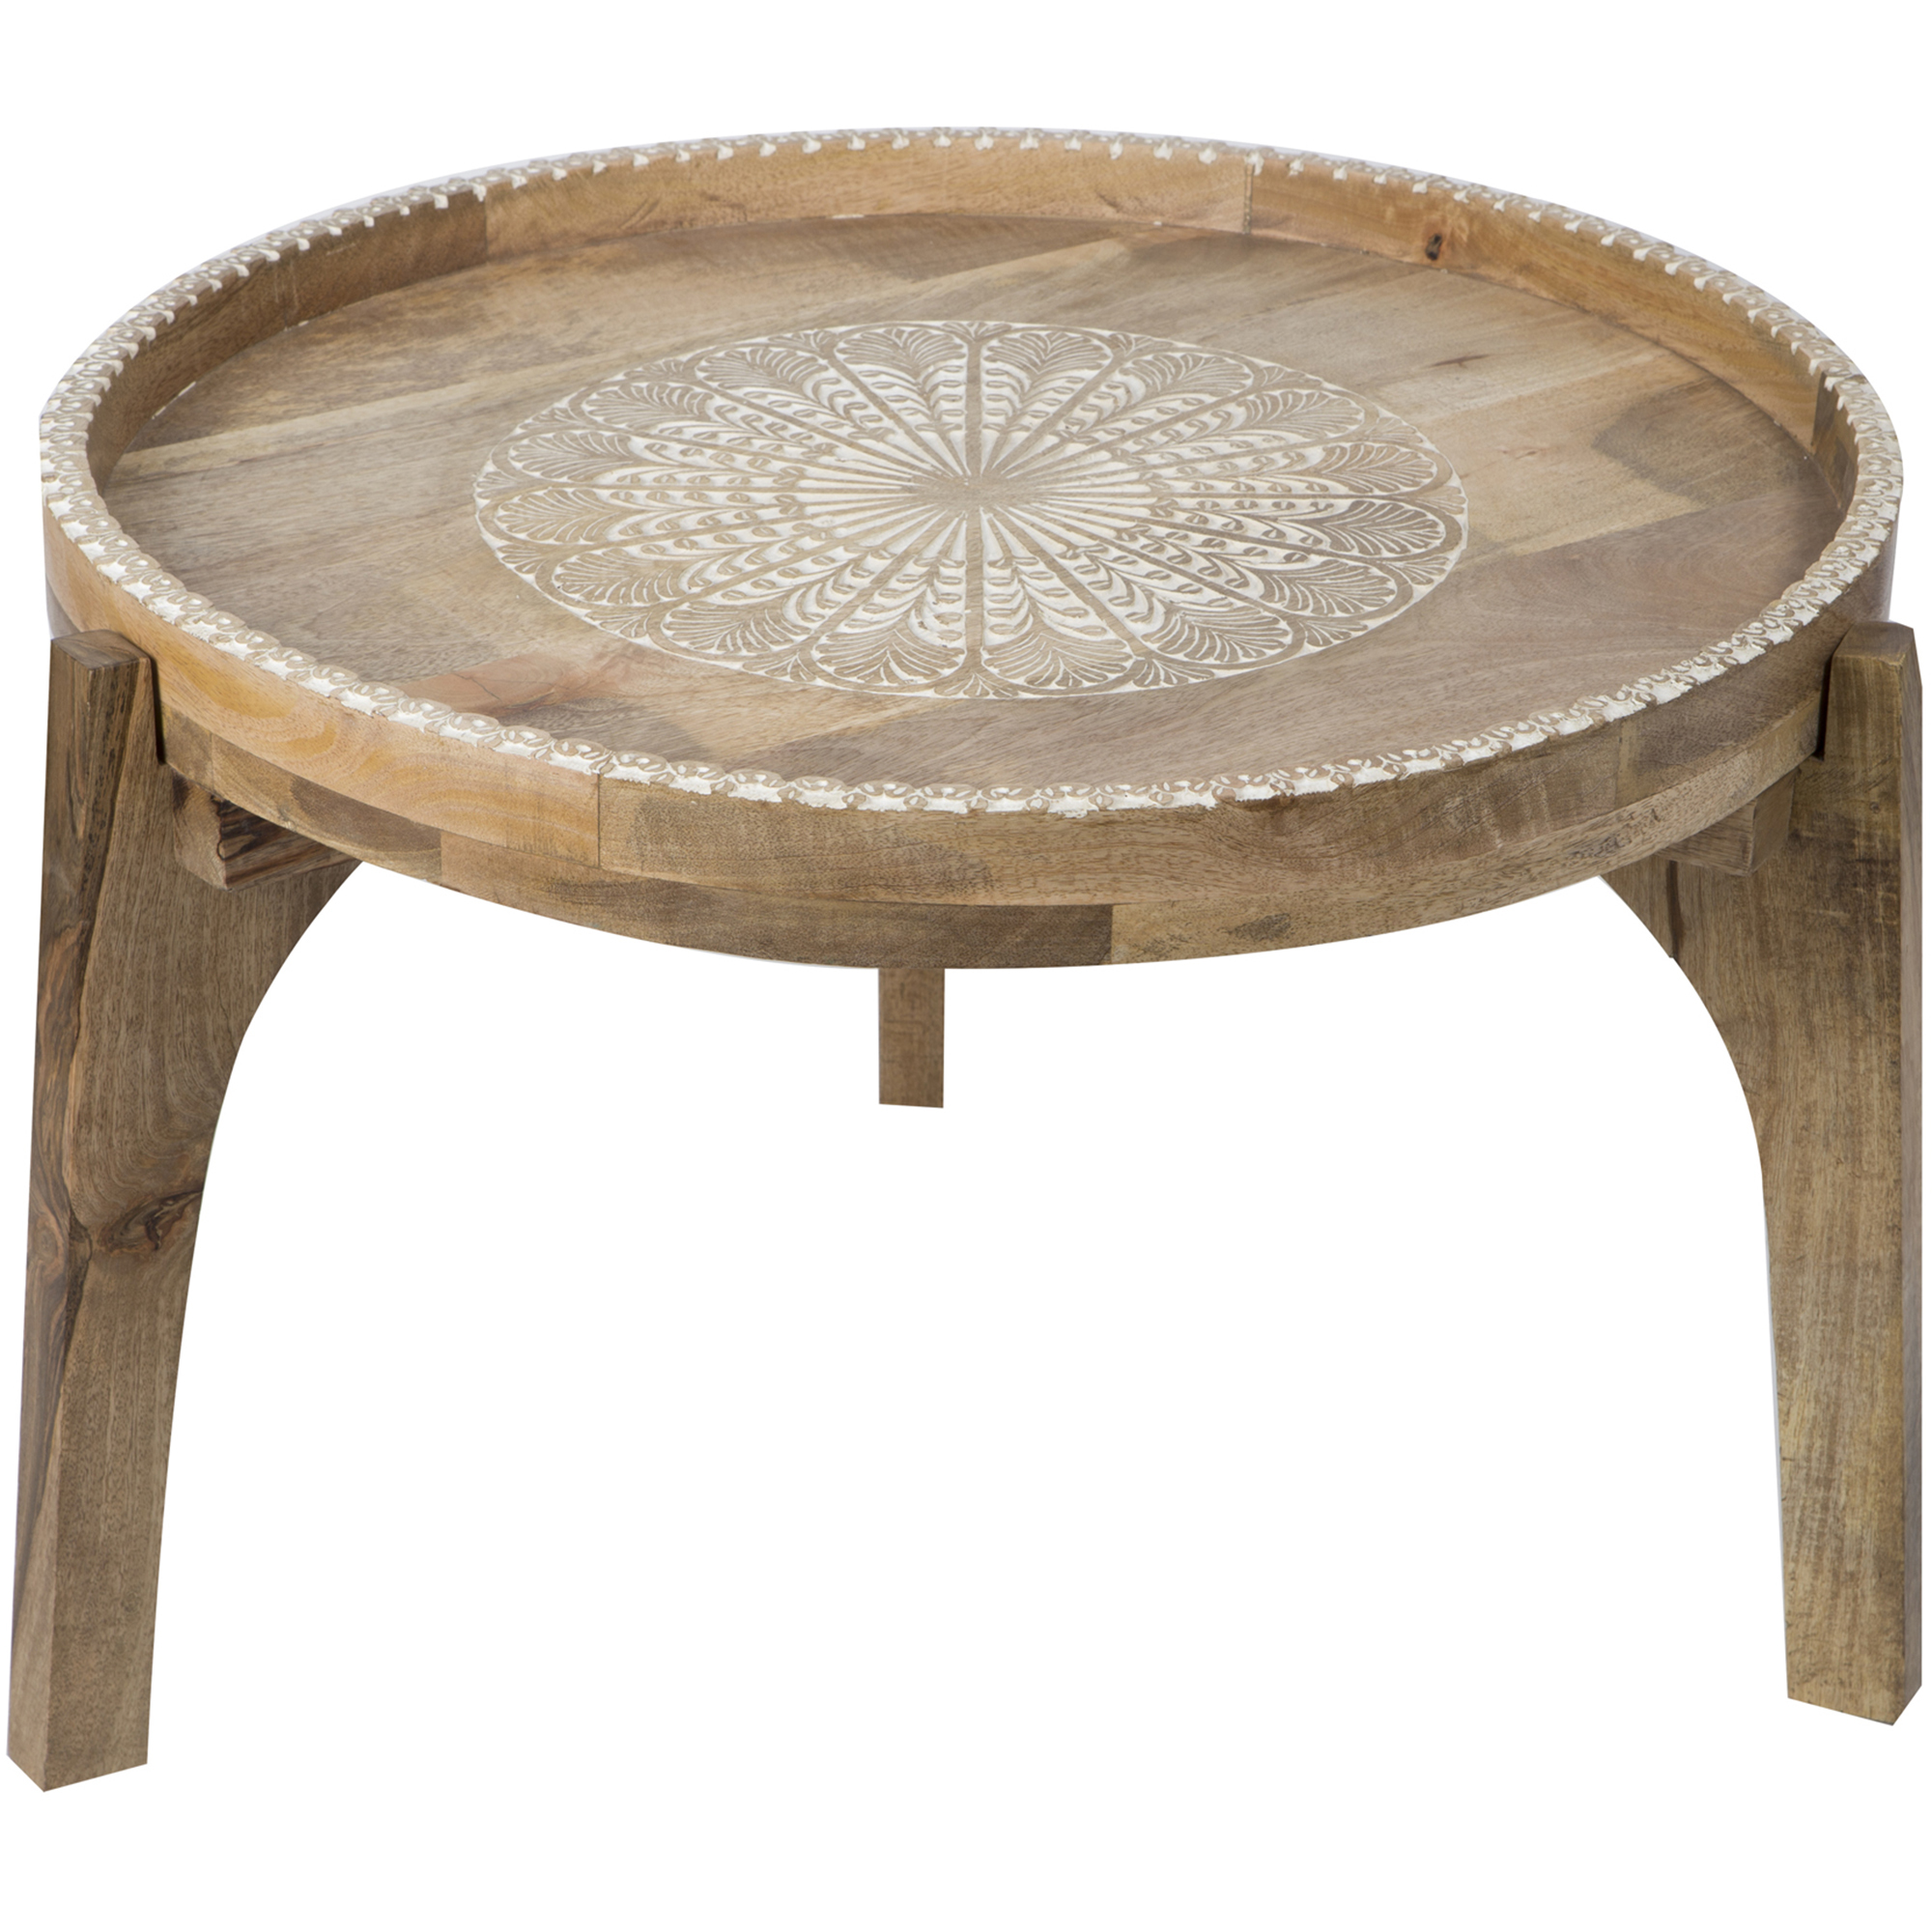 Outstanding Natural Aitana Mango Wood Coffee Table Machost Co Dining Chair Design Ideas Machostcouk